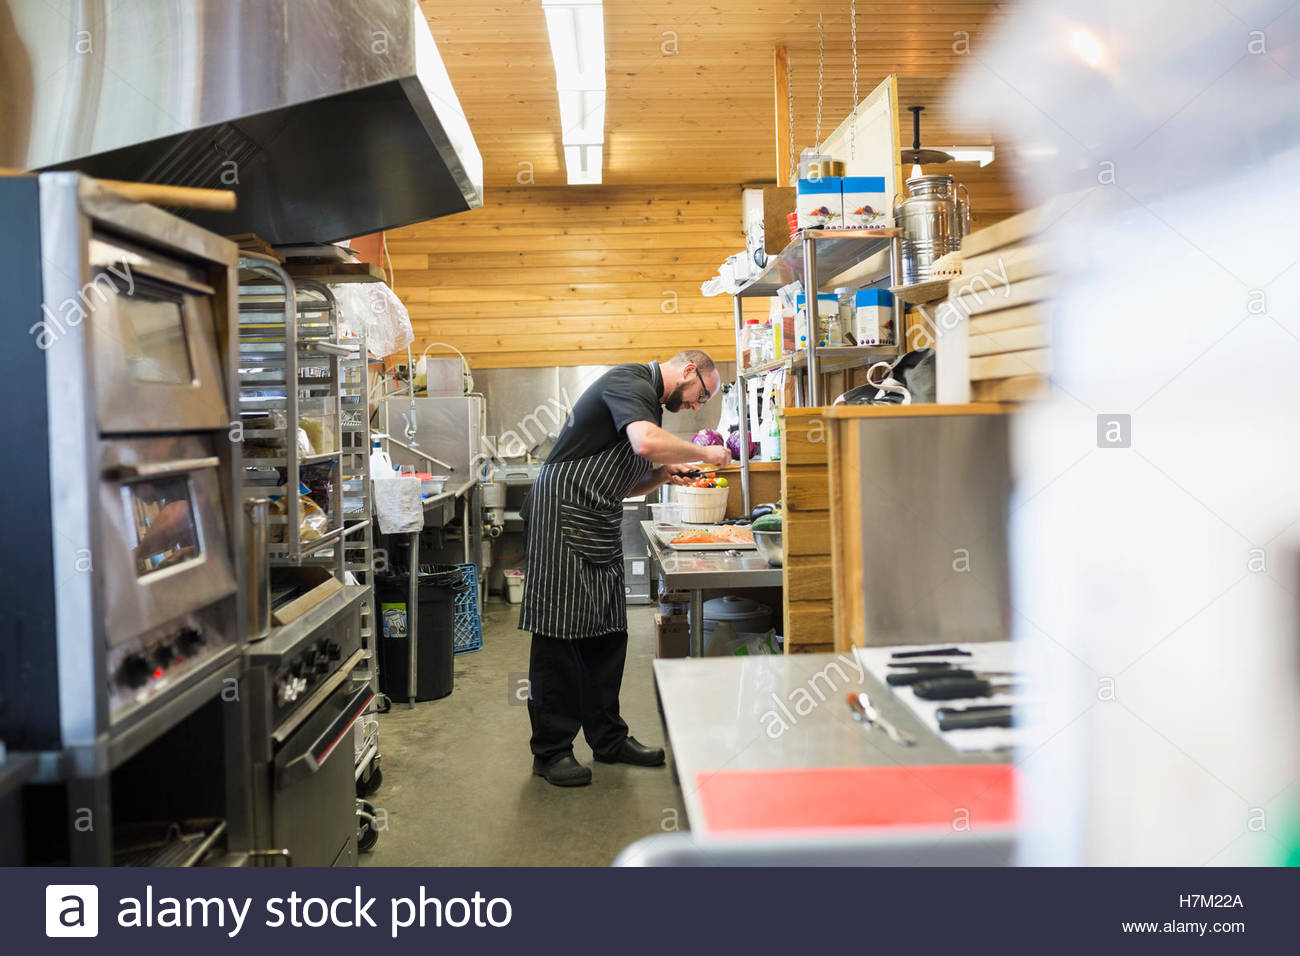 Chef cooking in restaurant commercial kitchen - Stock Image